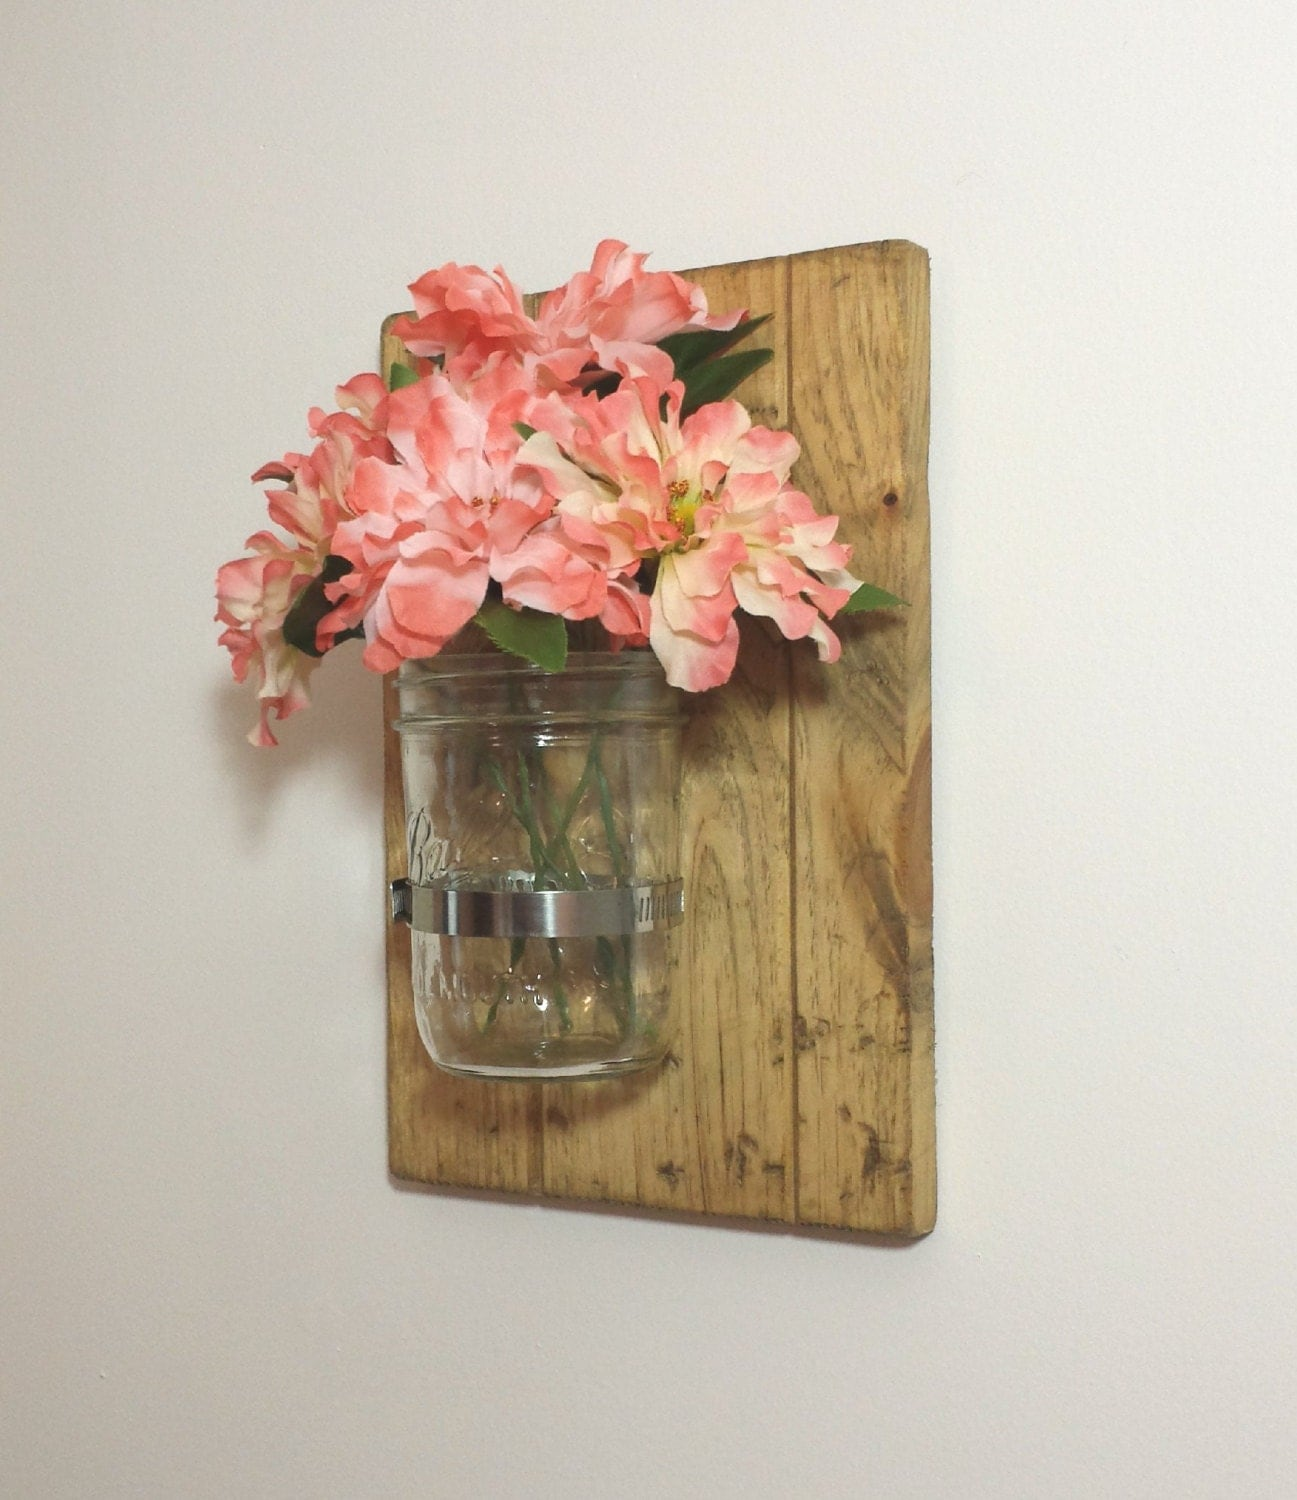 Wall Decor With Mason Jars : Set of mason jar wall decor distressed rustic